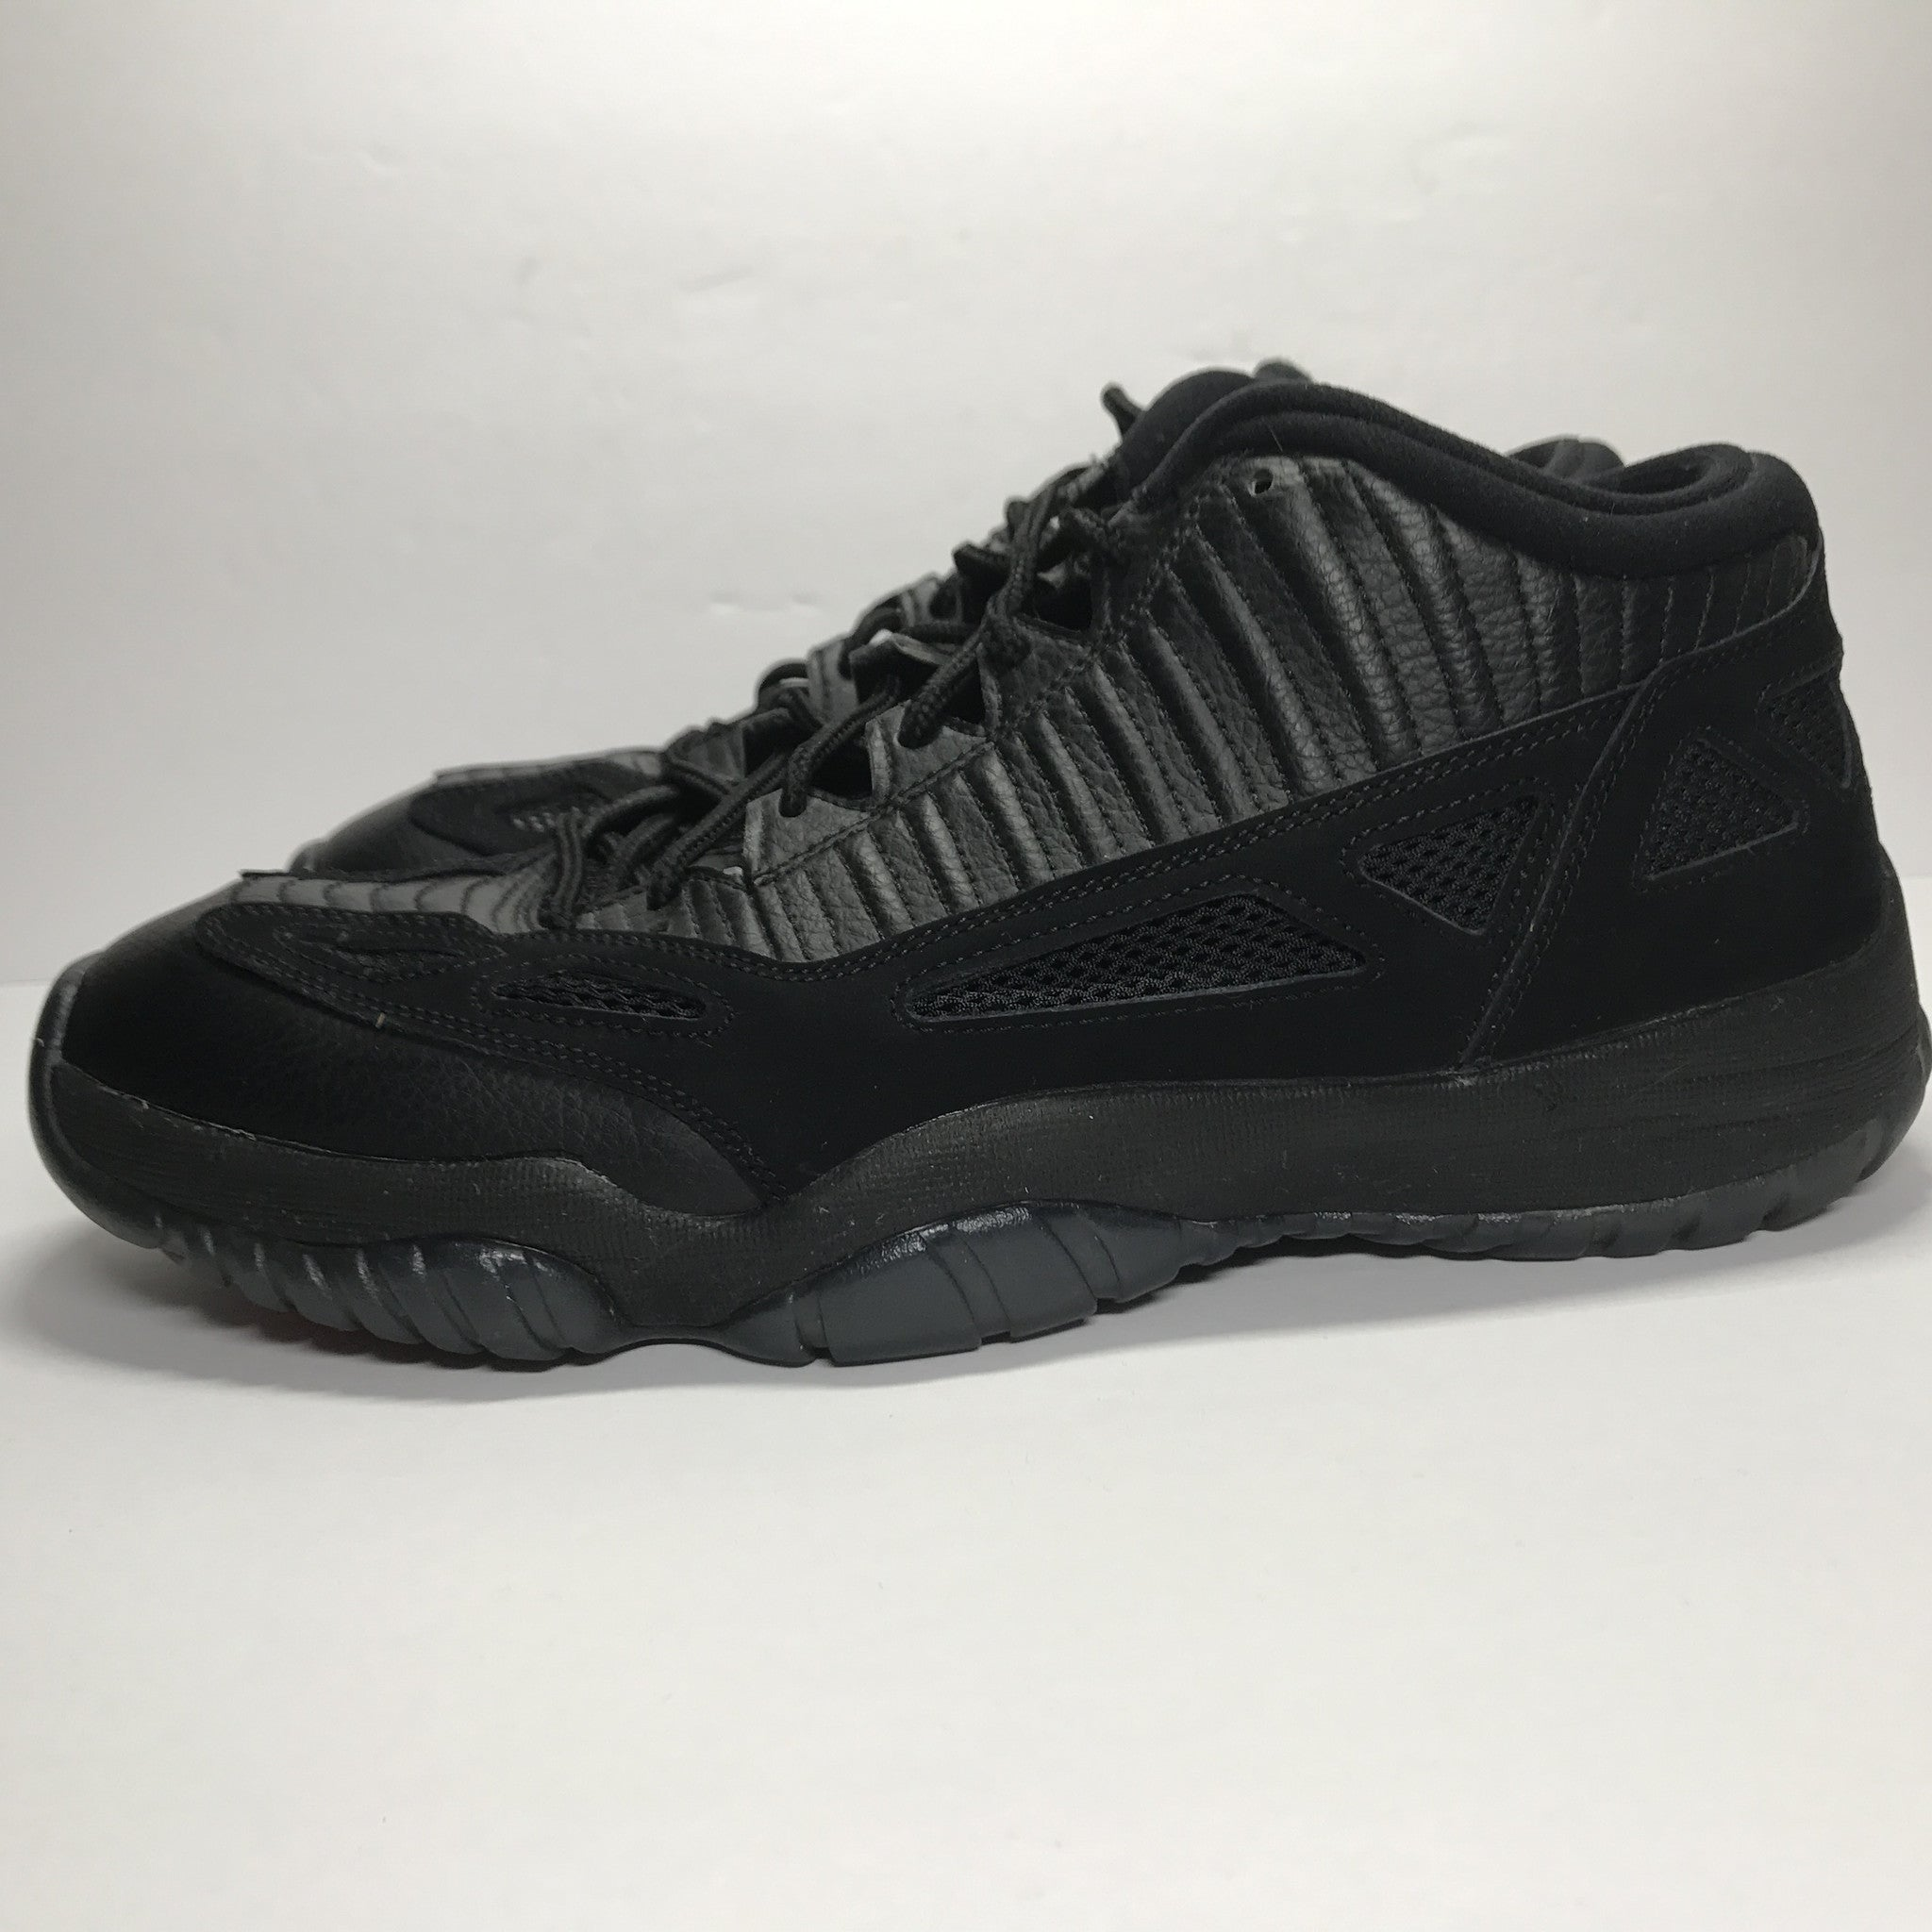 Nike Air Jordan 11 XI Low Referee Size 11.5